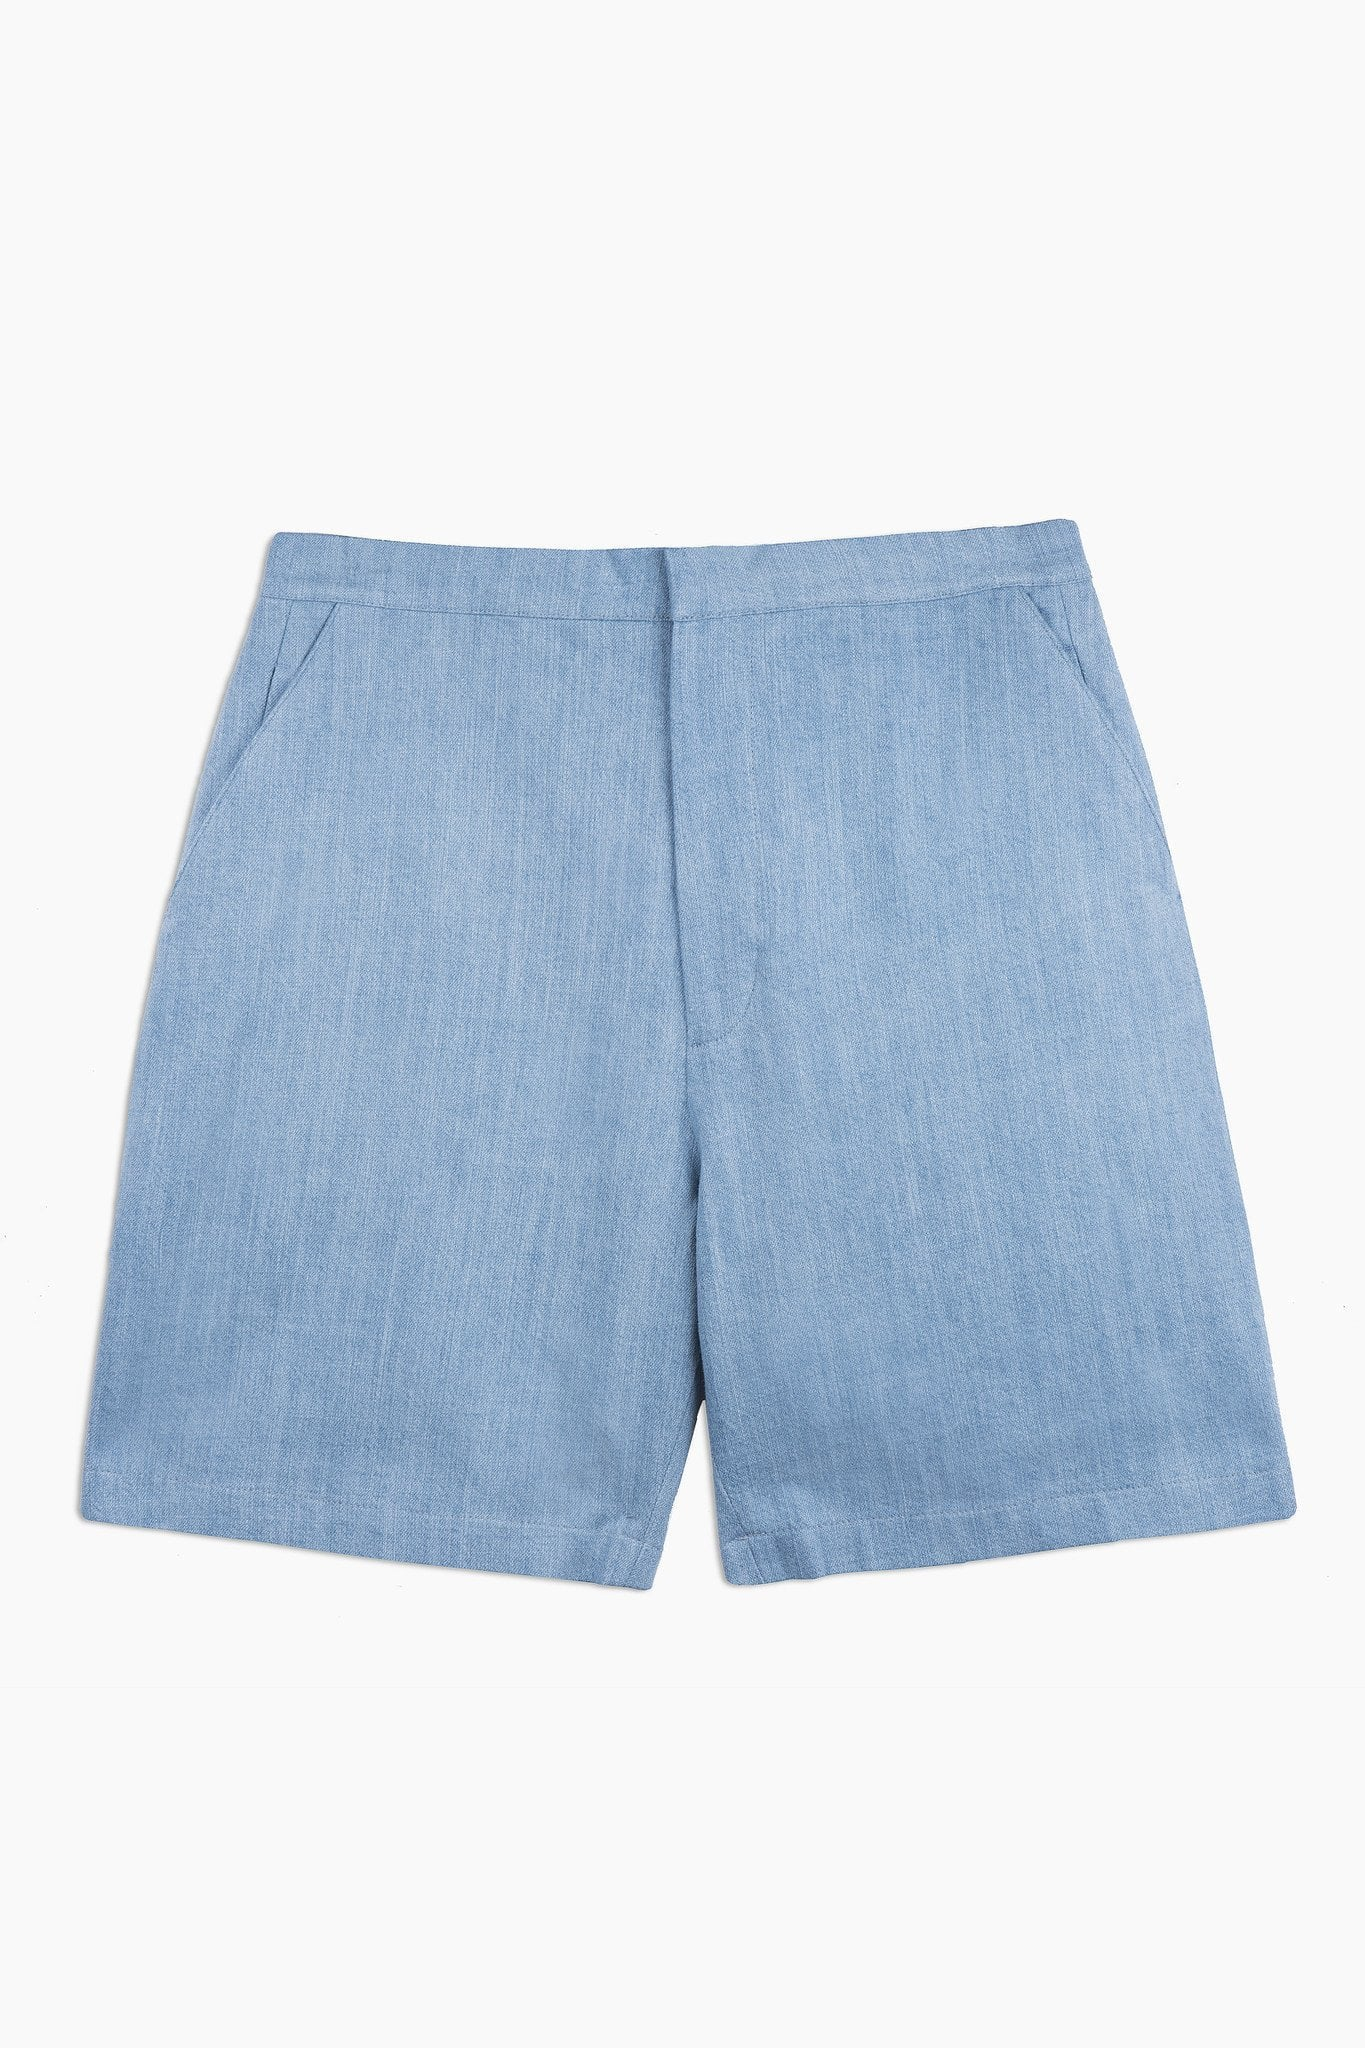 Short Tinos – denim